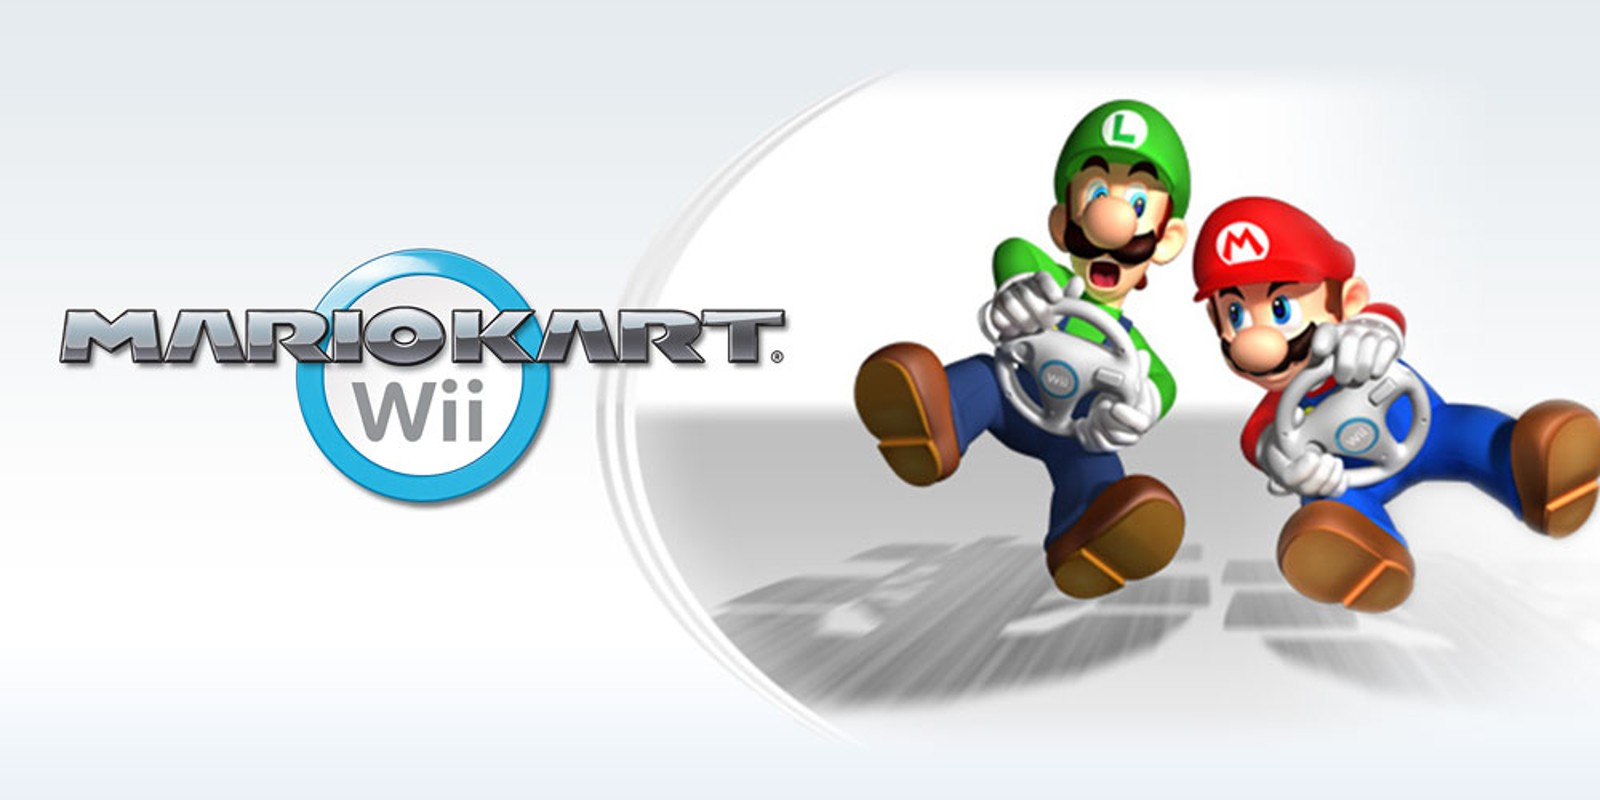 Check Out the Best Selling Wii Games